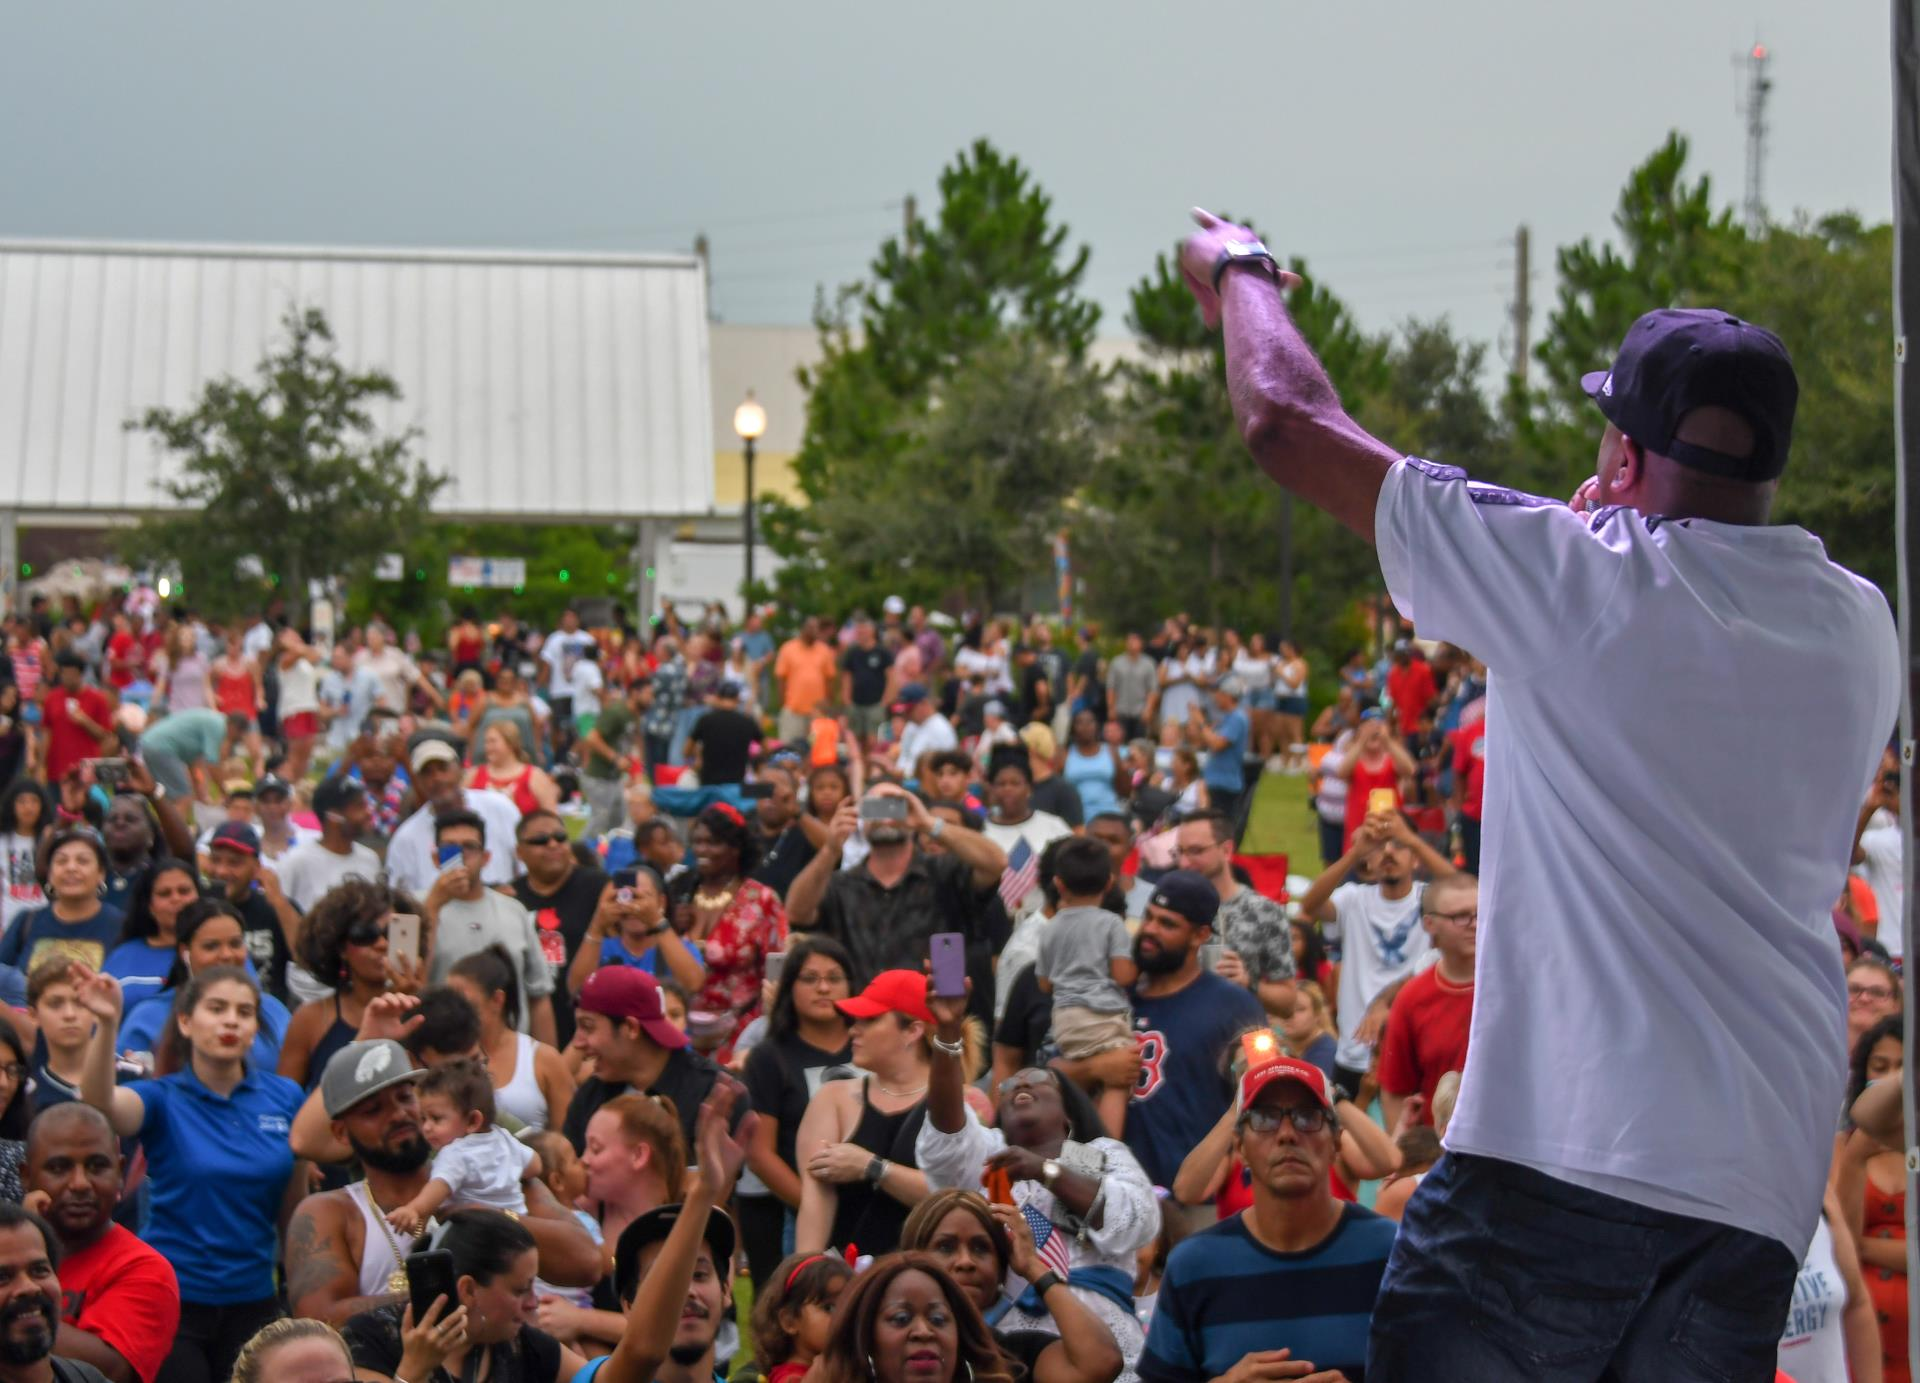 This is a photo of Rob Base performing in front of a large crowd at the 2019 Monumental 4th of July.